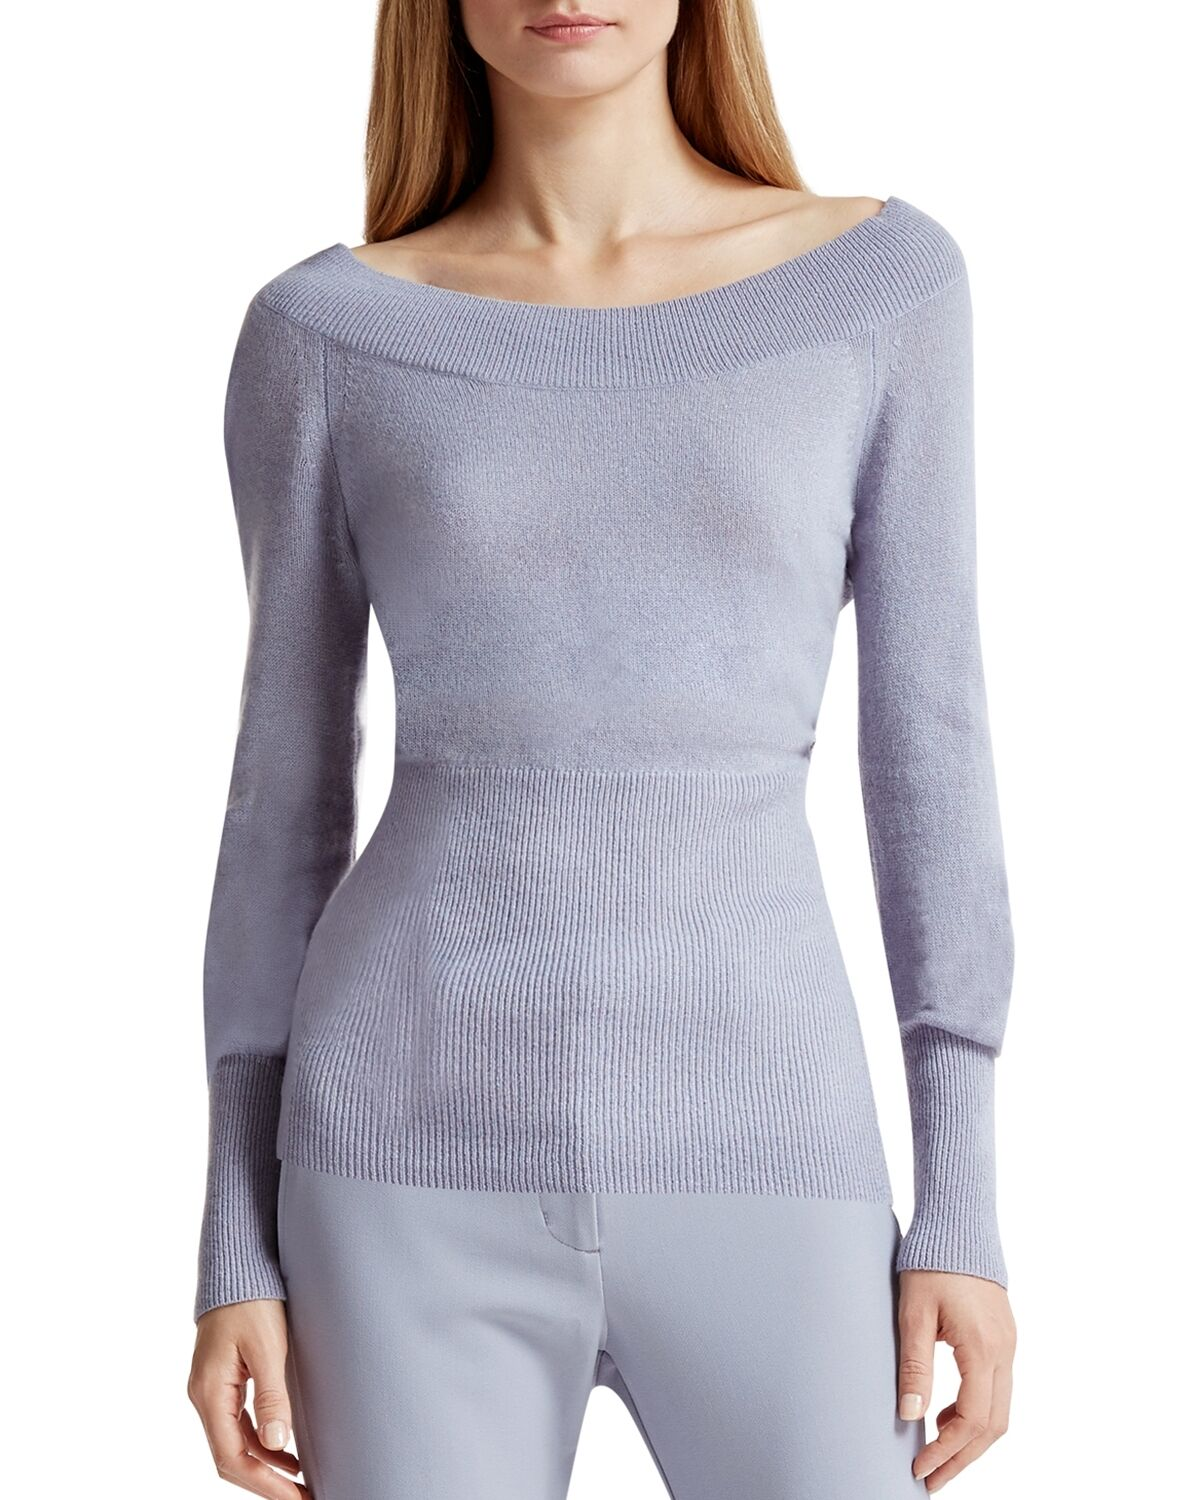 Halston Heritage Off-the-shoulder Cashmere Sweater Small Blue | eBay